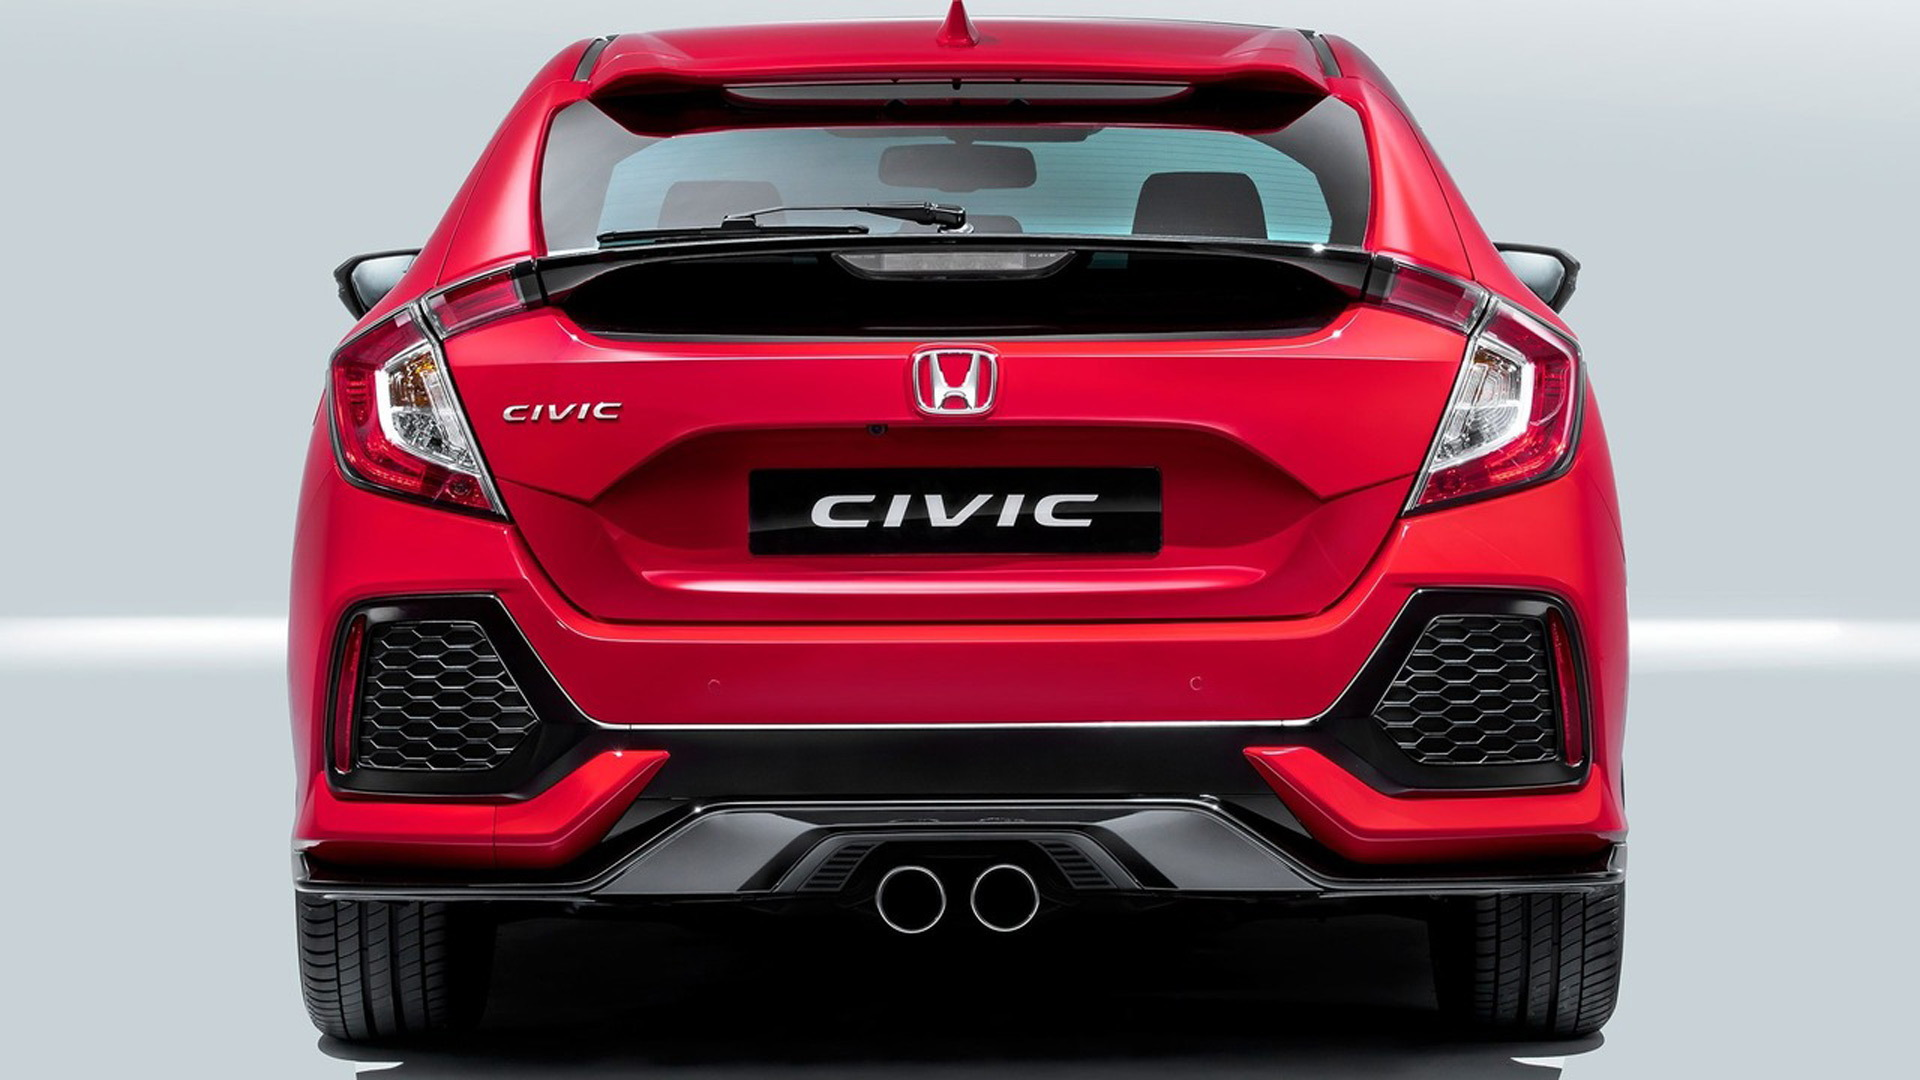 2017 Honda Civic Hatchback (European spec)